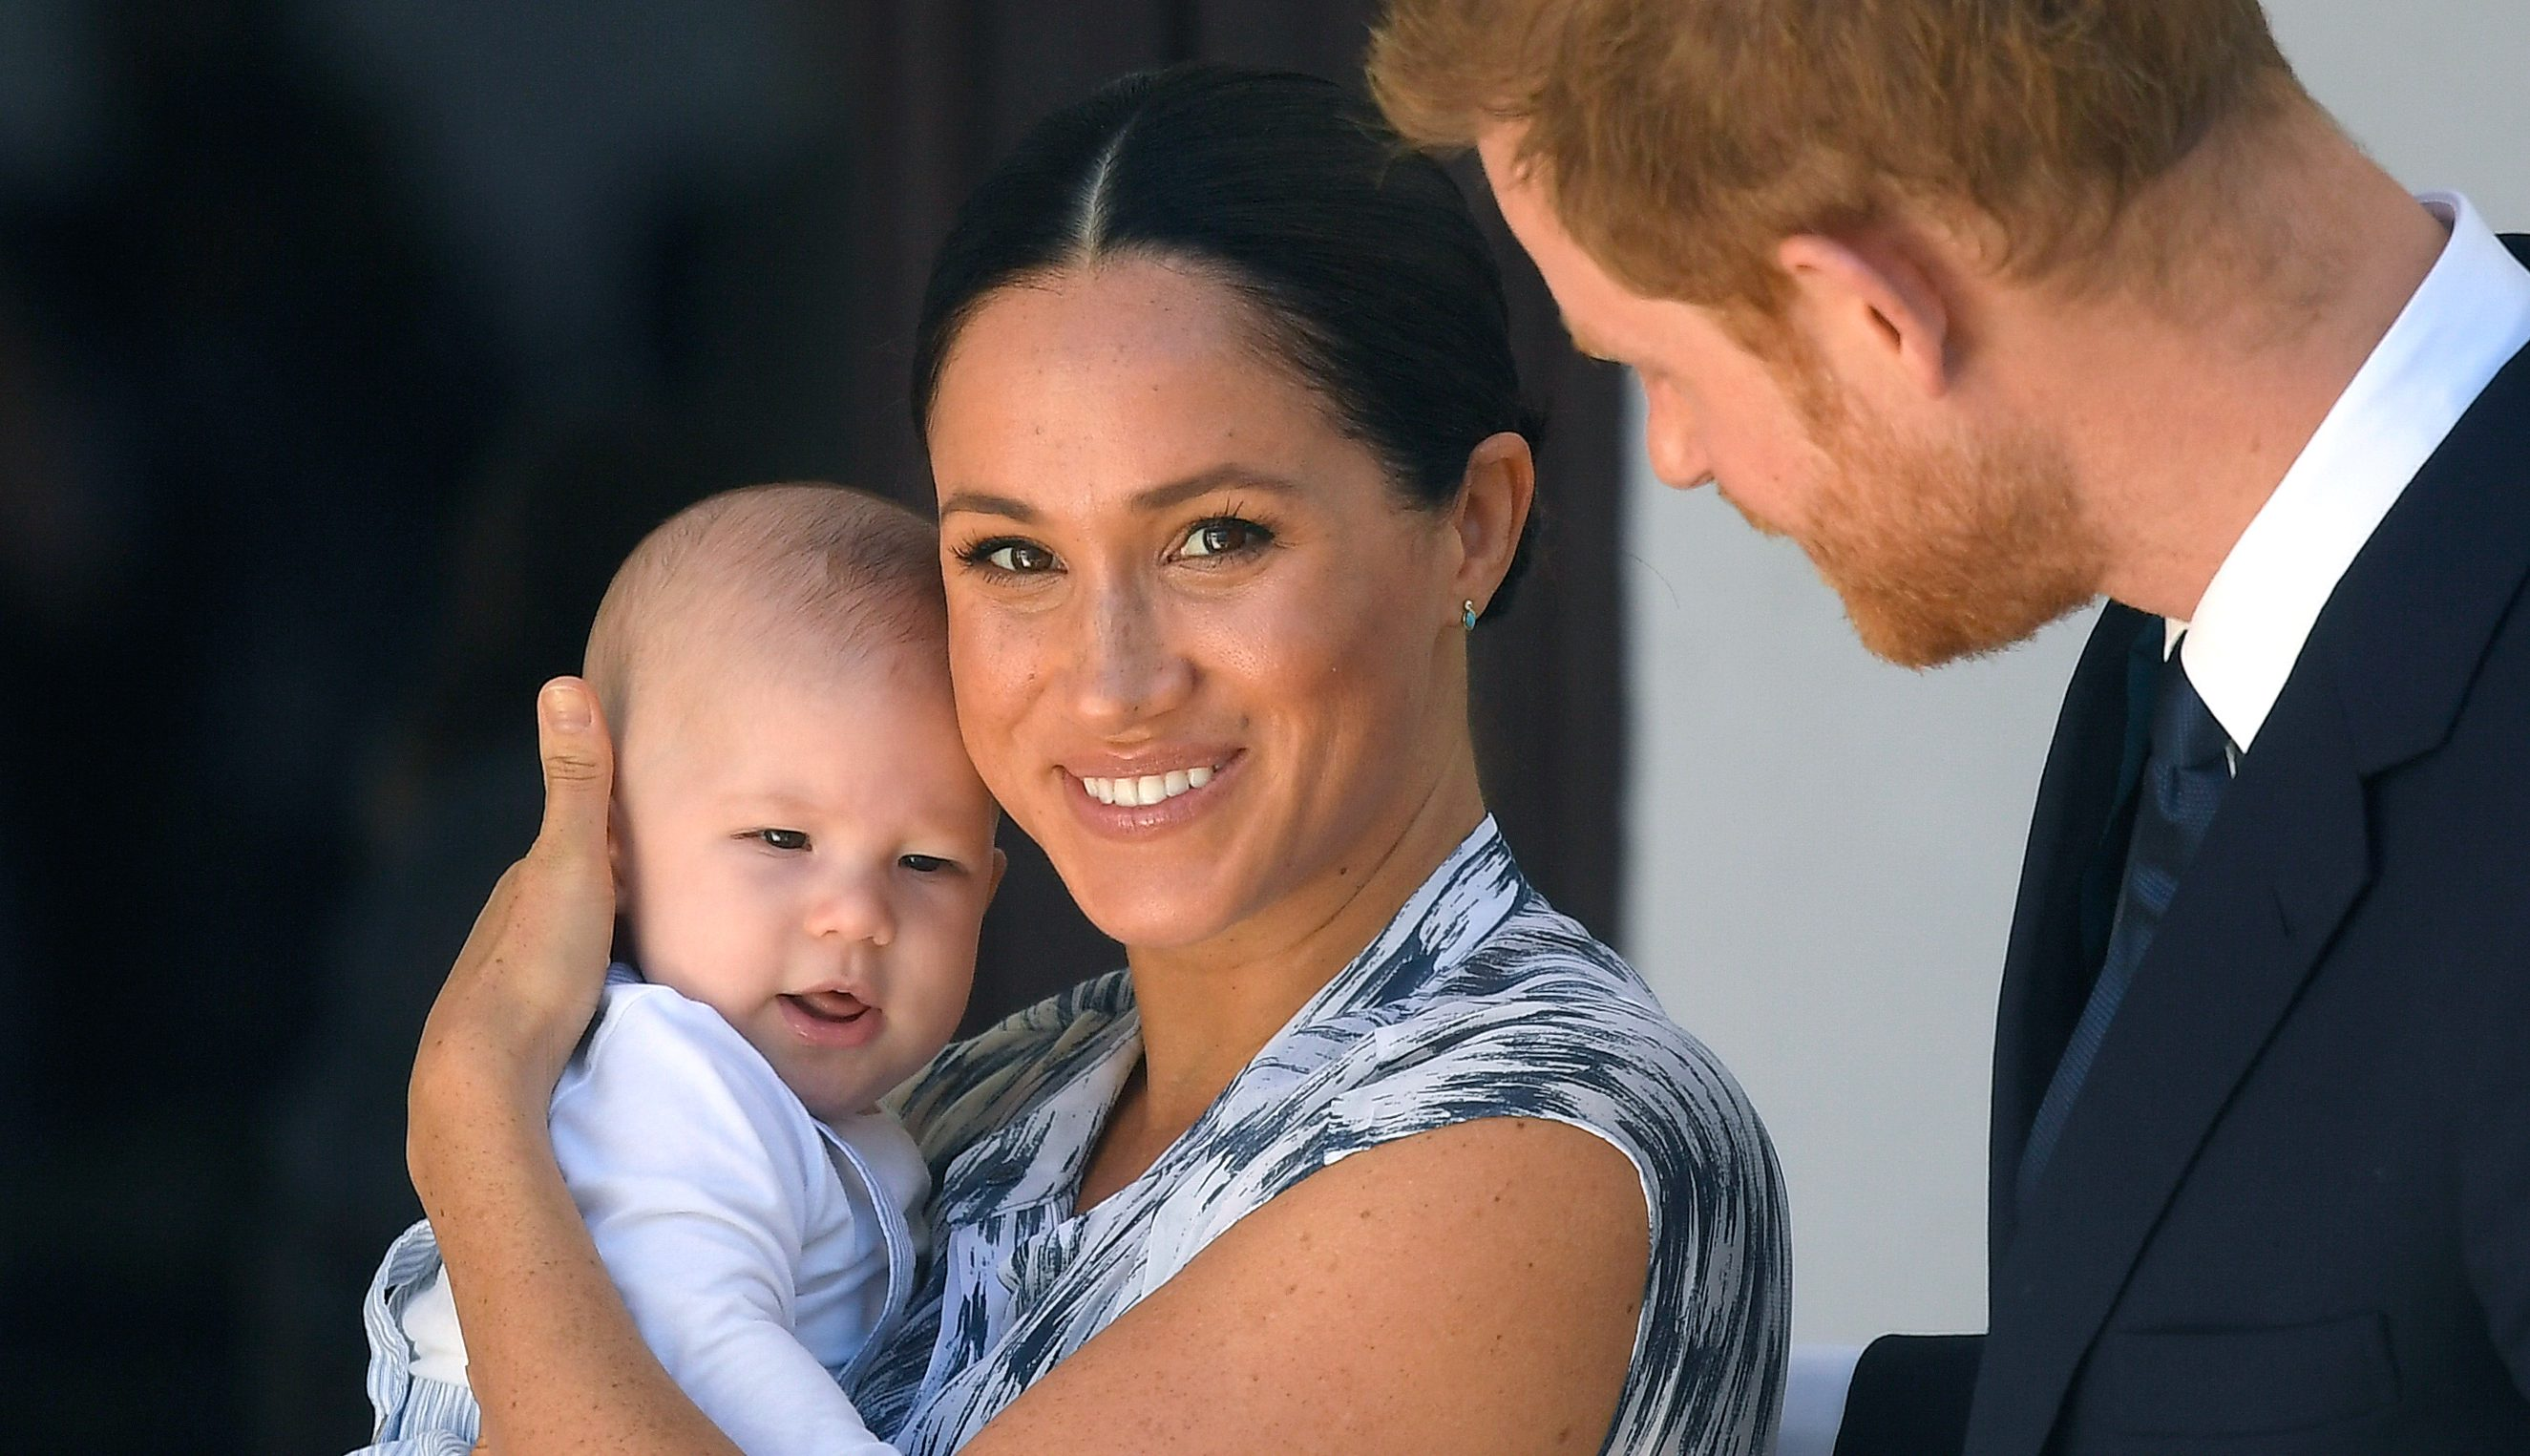 Meghan Markle has adorable nickname for baby Archie